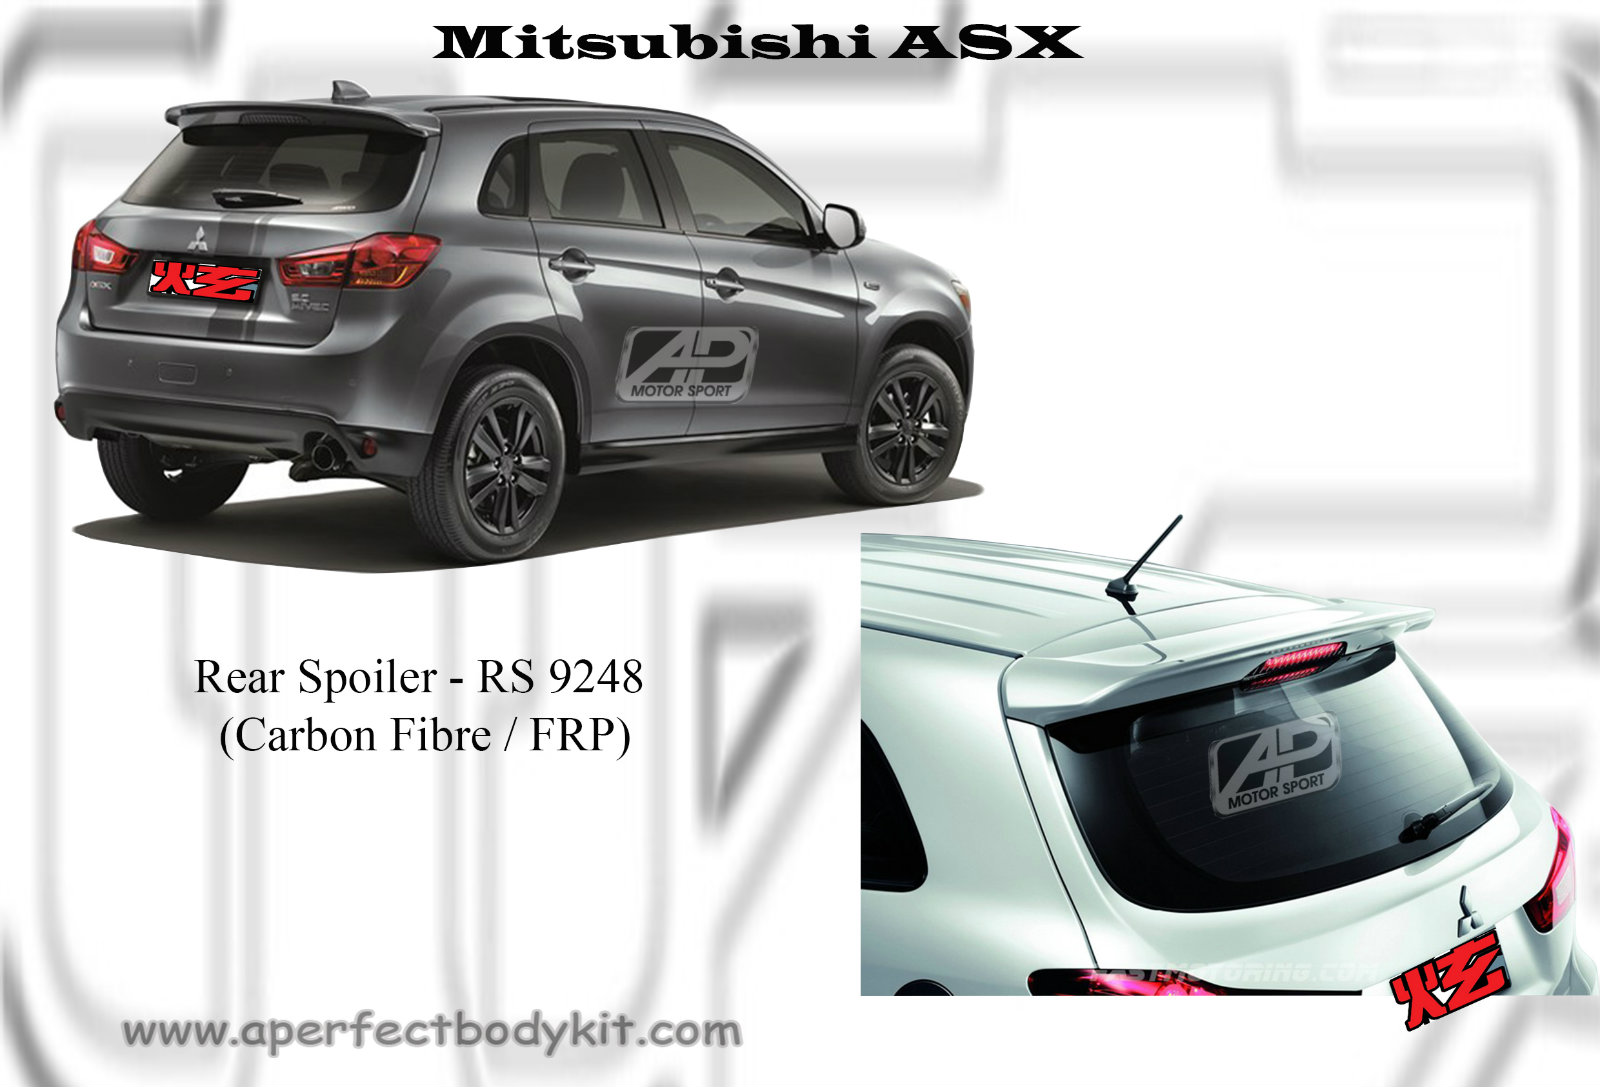 mitsubishi asx rear spoiler mitsubishi asx jb johor. Black Bedroom Furniture Sets. Home Design Ideas